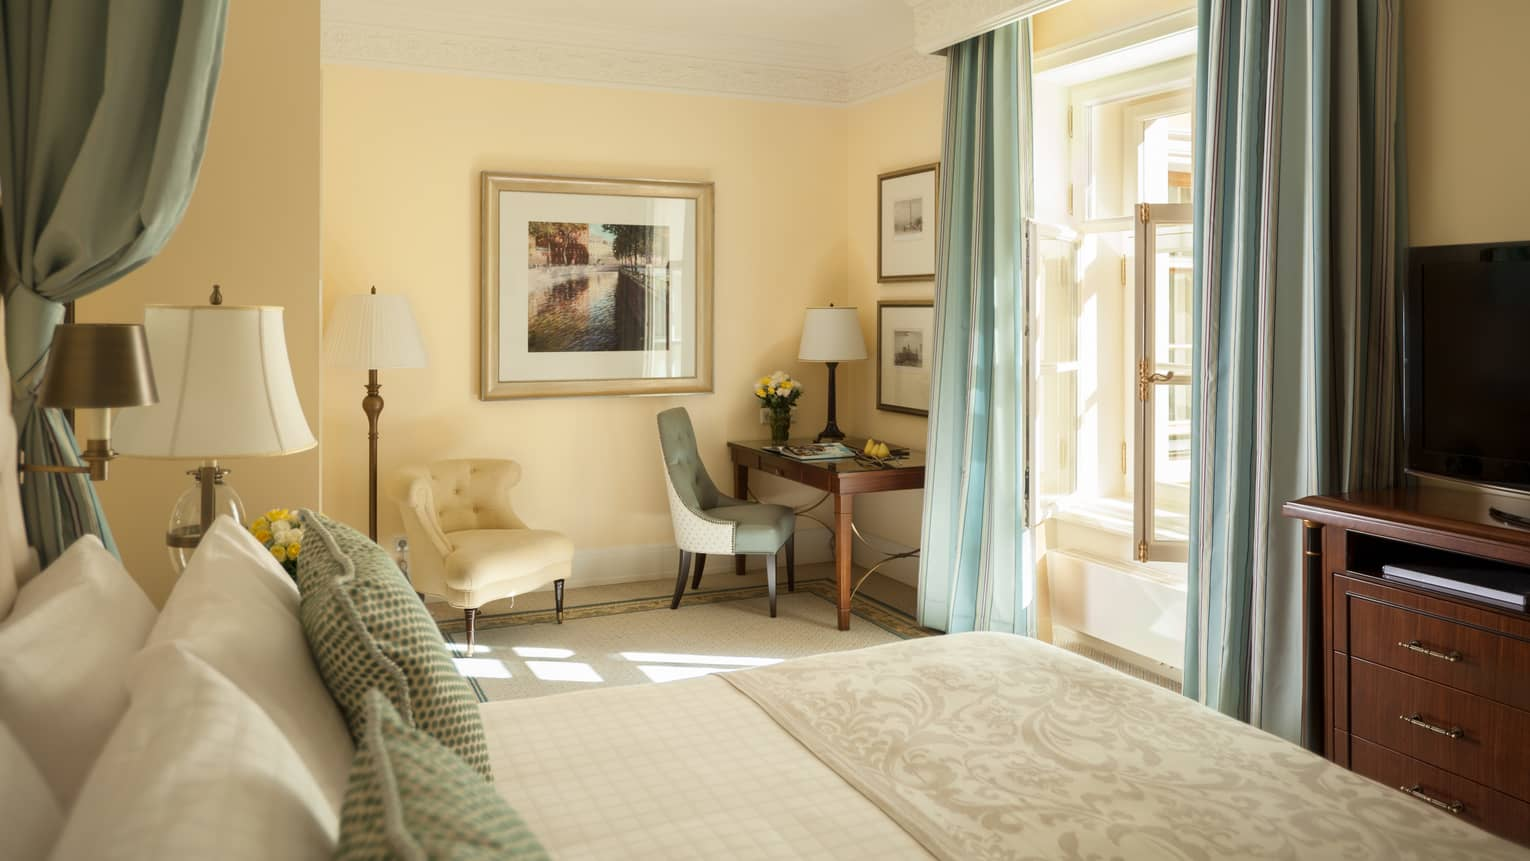 Deluxe Room bed in front of sunny picture window with pale blue curtains, white chair, desk